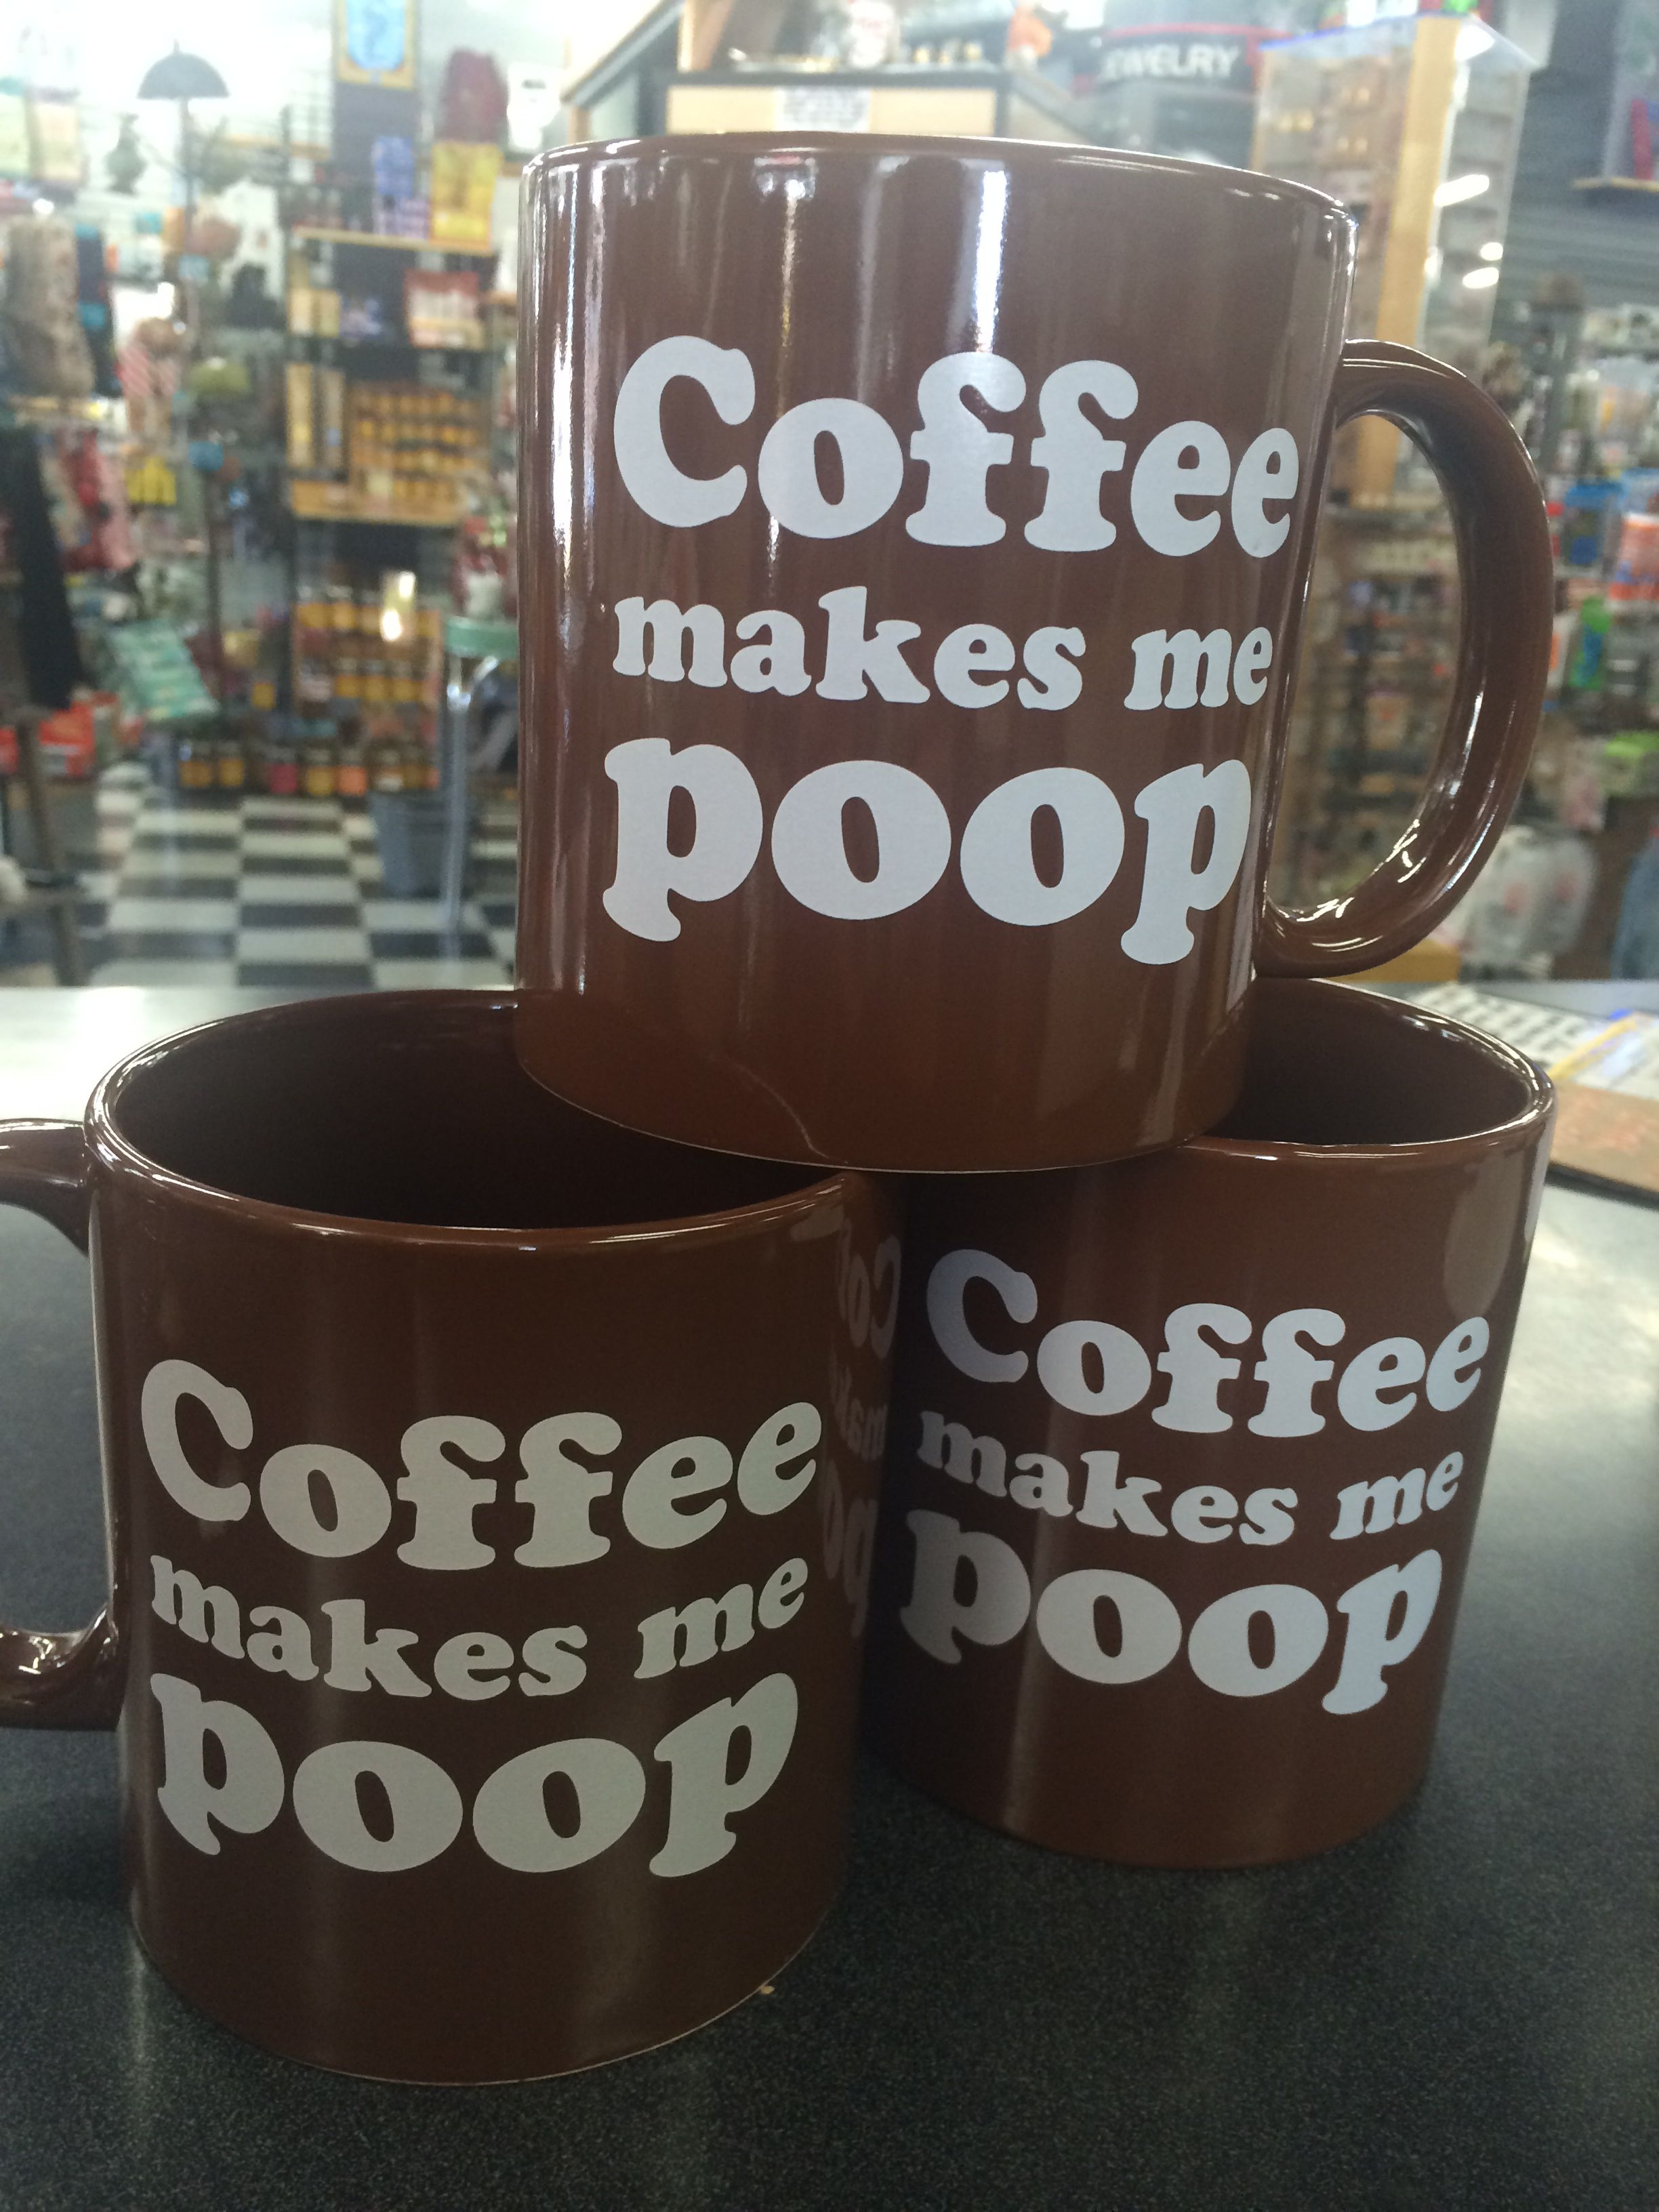 Giant Coffee Mugs With A Very Simple Message